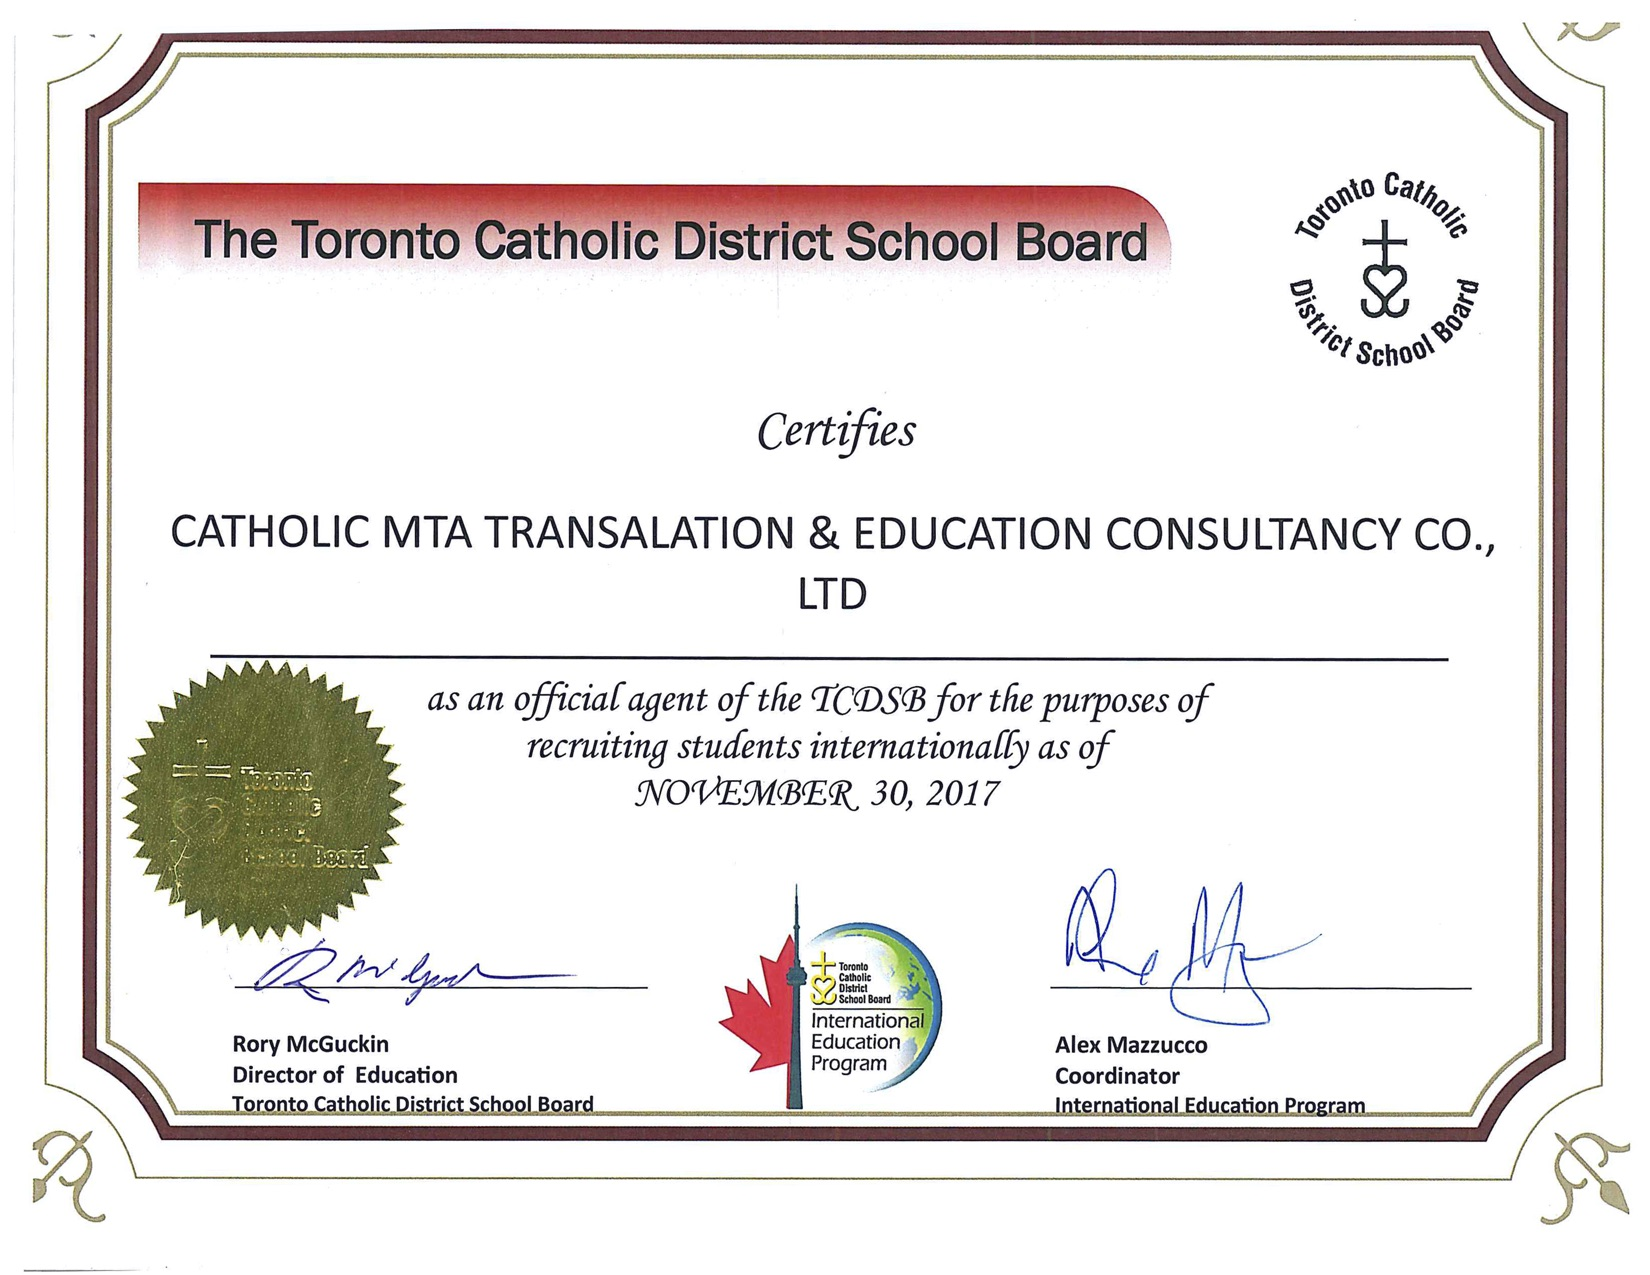 Chung nhan agent Toronto Catholic District School Board